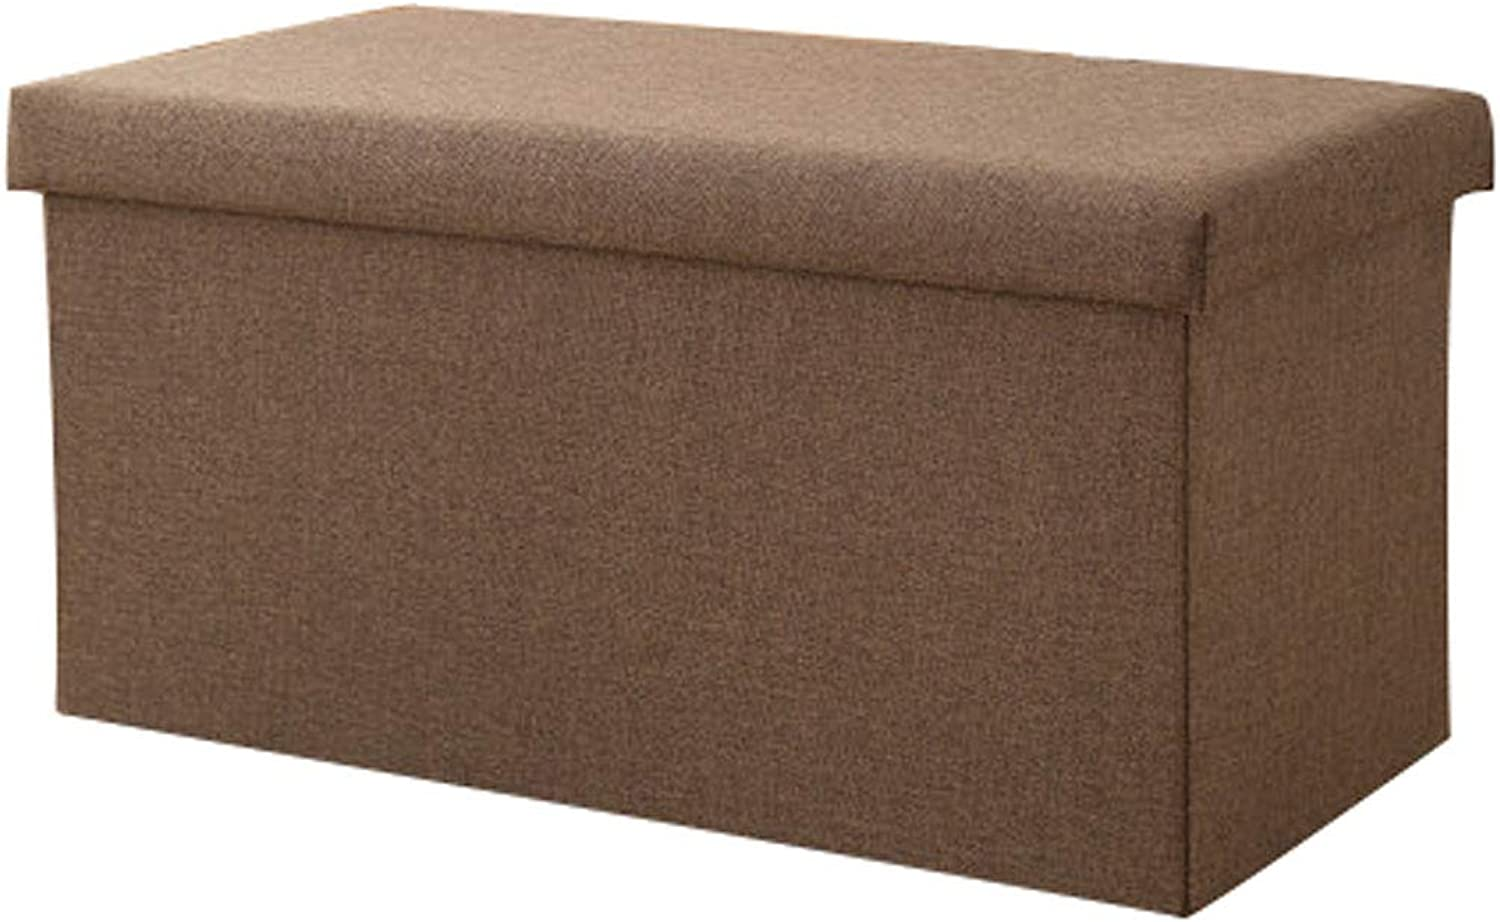 Household Storage Box Rectangular Storage Stool Storage Stool Can Sit Adult Sofa Bench Change shoes Bench, Multi-color, Multi-Size (color   Brown Coffee, Size   60  36  36cm)